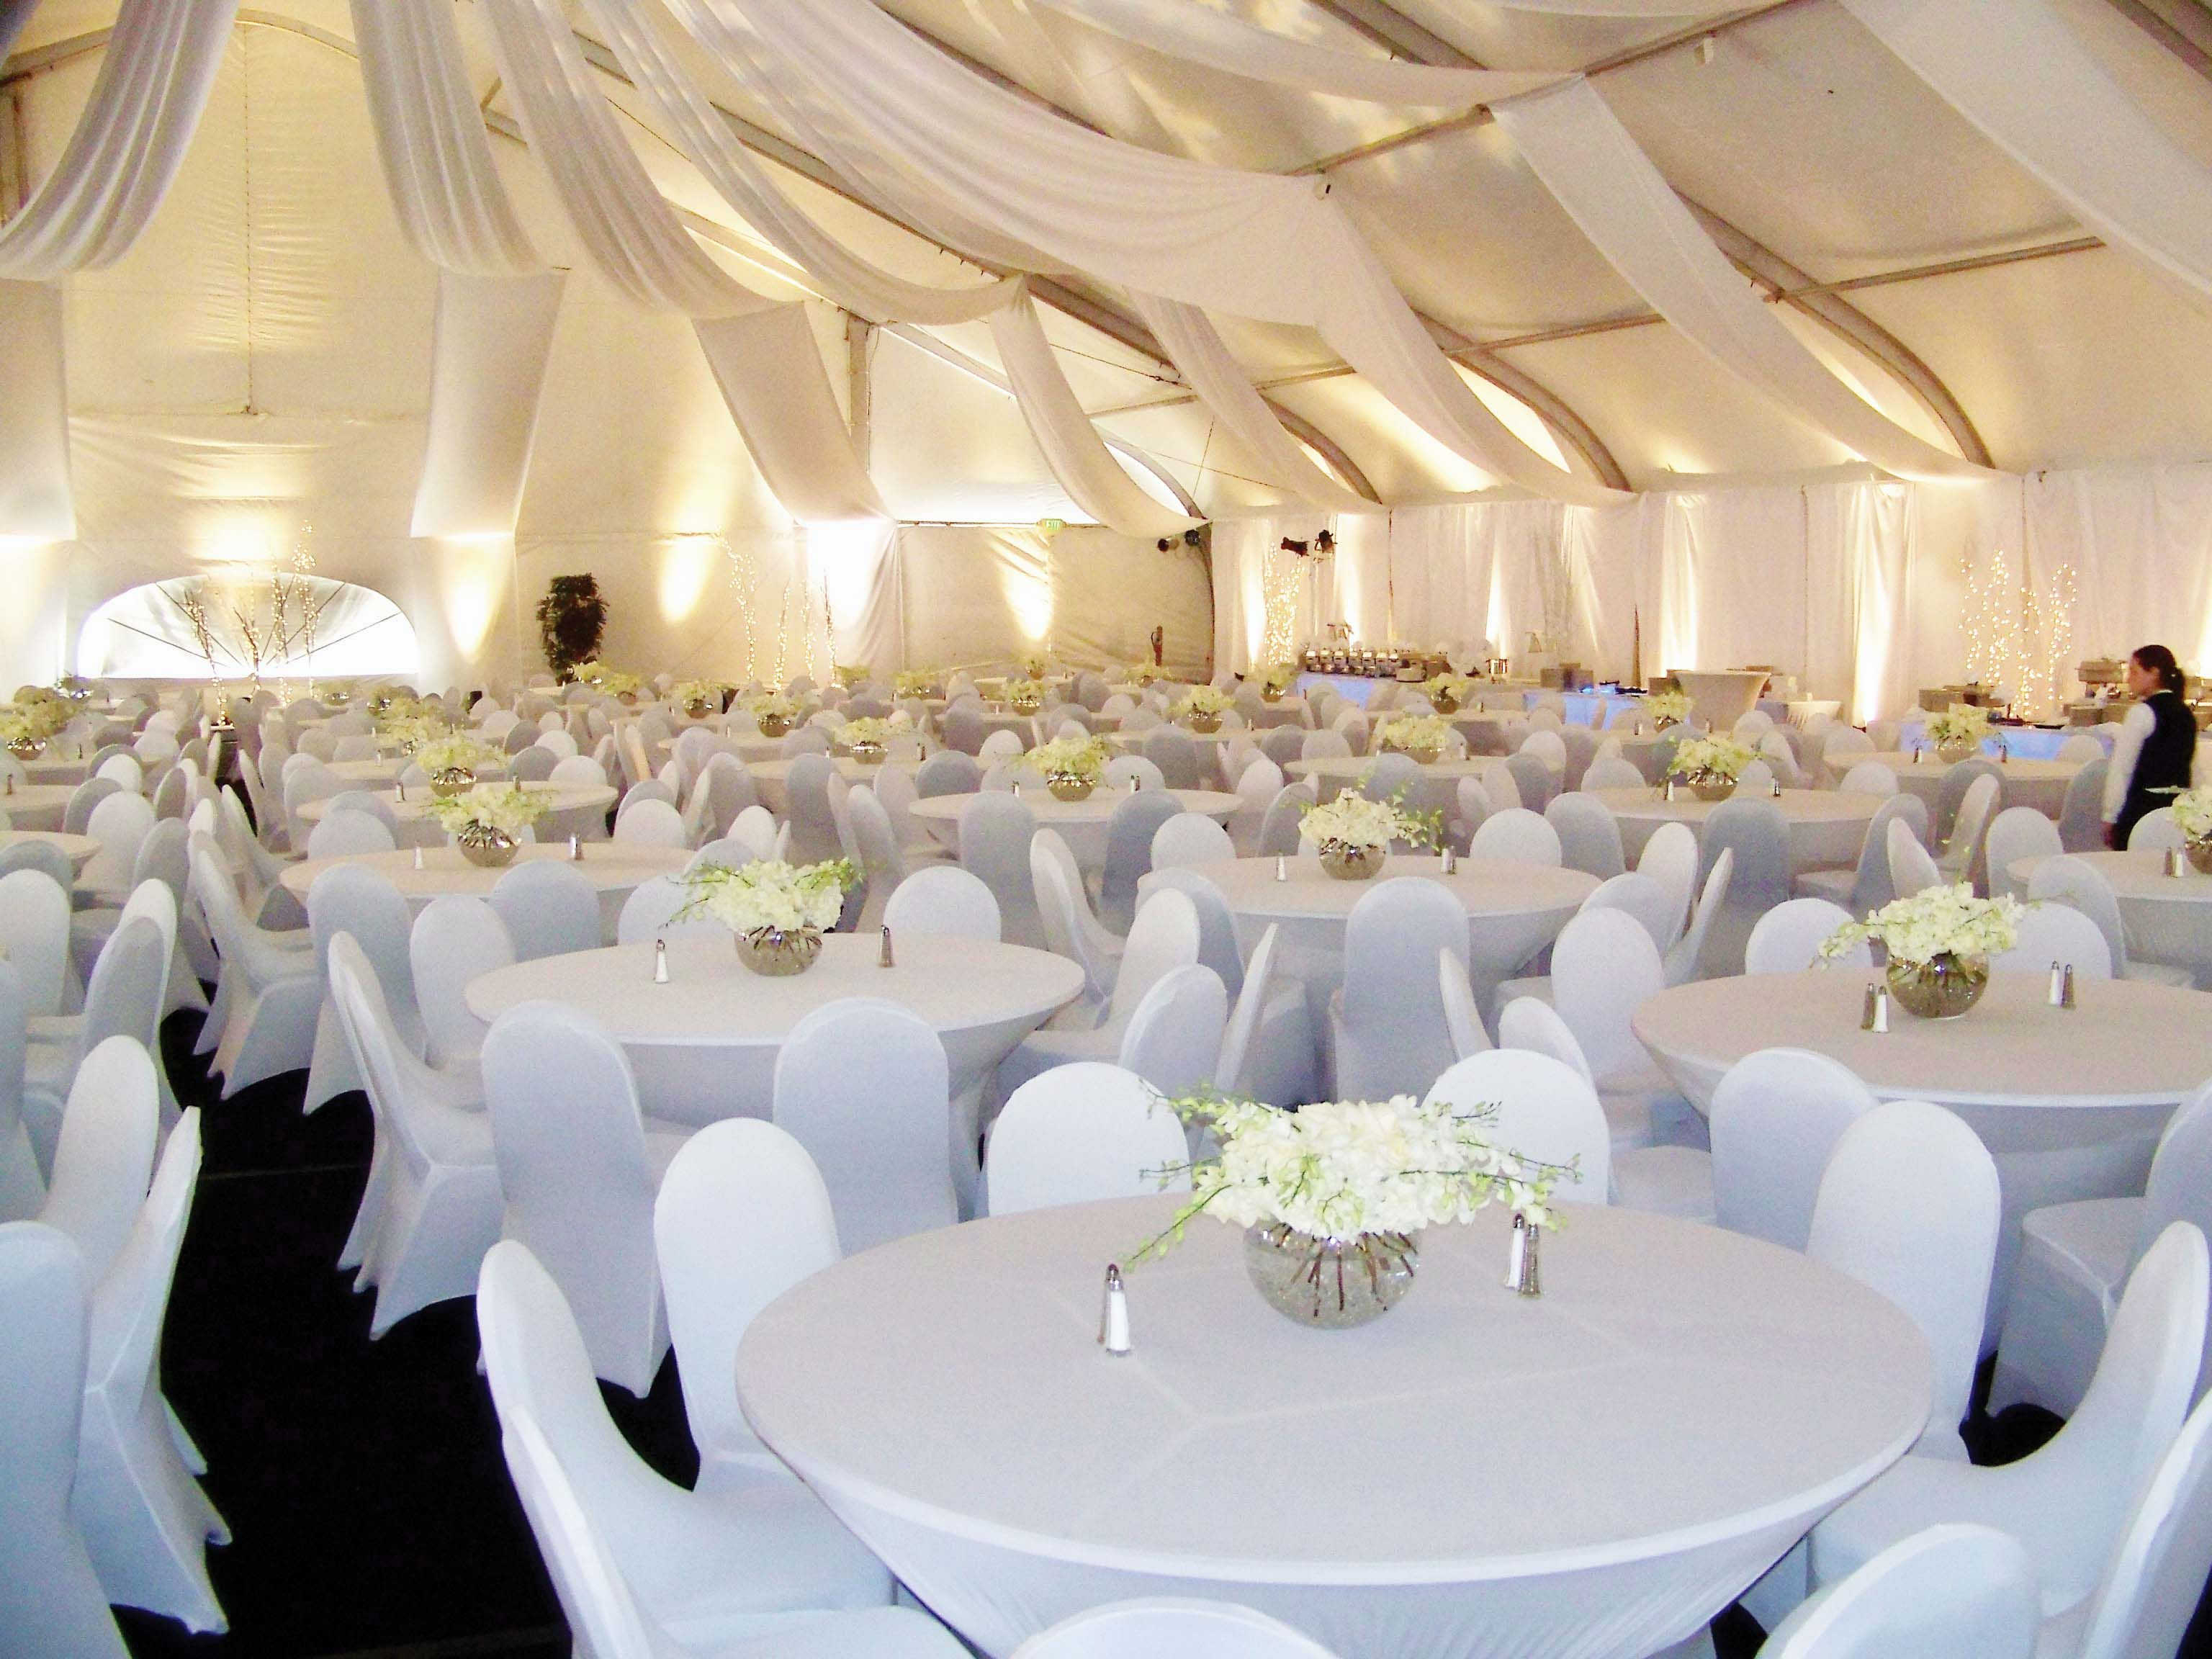 wedding tents | wedding reception setup at the newport dunes the 4000 square foot tent . & wedding tents | wedding reception setup at the newport dunes the ...